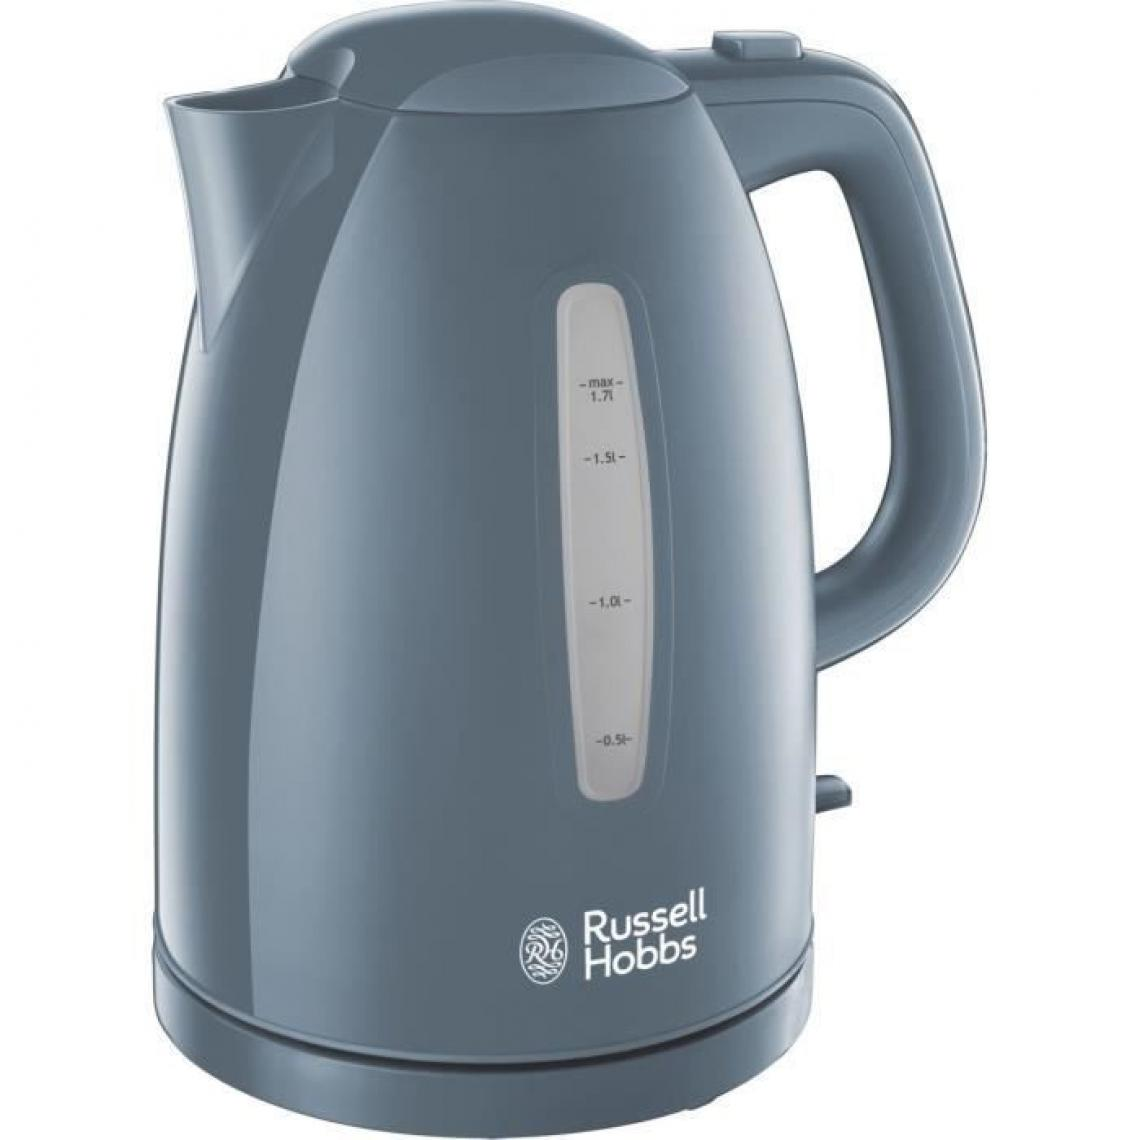 Russell Hobbs Russell Hobbs 21274-70 Bouilloire 1,7L Texture, Ebullition Ultra Rapide - Gris